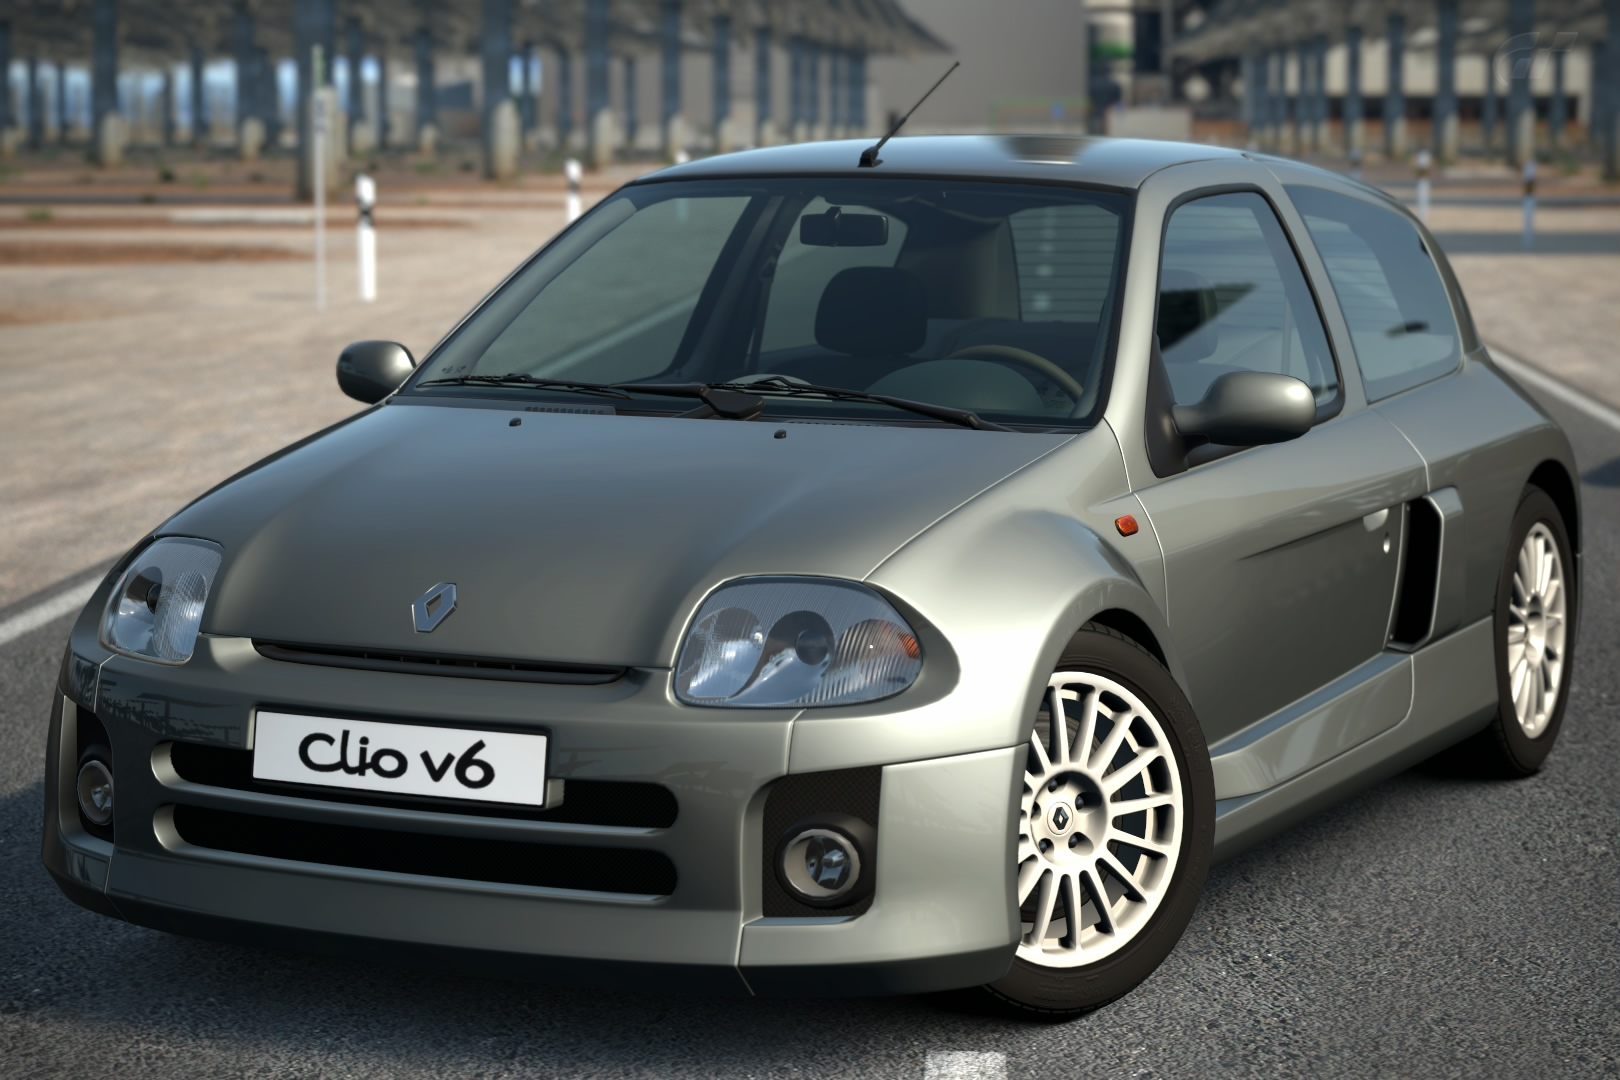 clio renault sport v6 24v 39 00 gran turismo wiki fandom powered by wikia. Black Bedroom Furniture Sets. Home Design Ideas